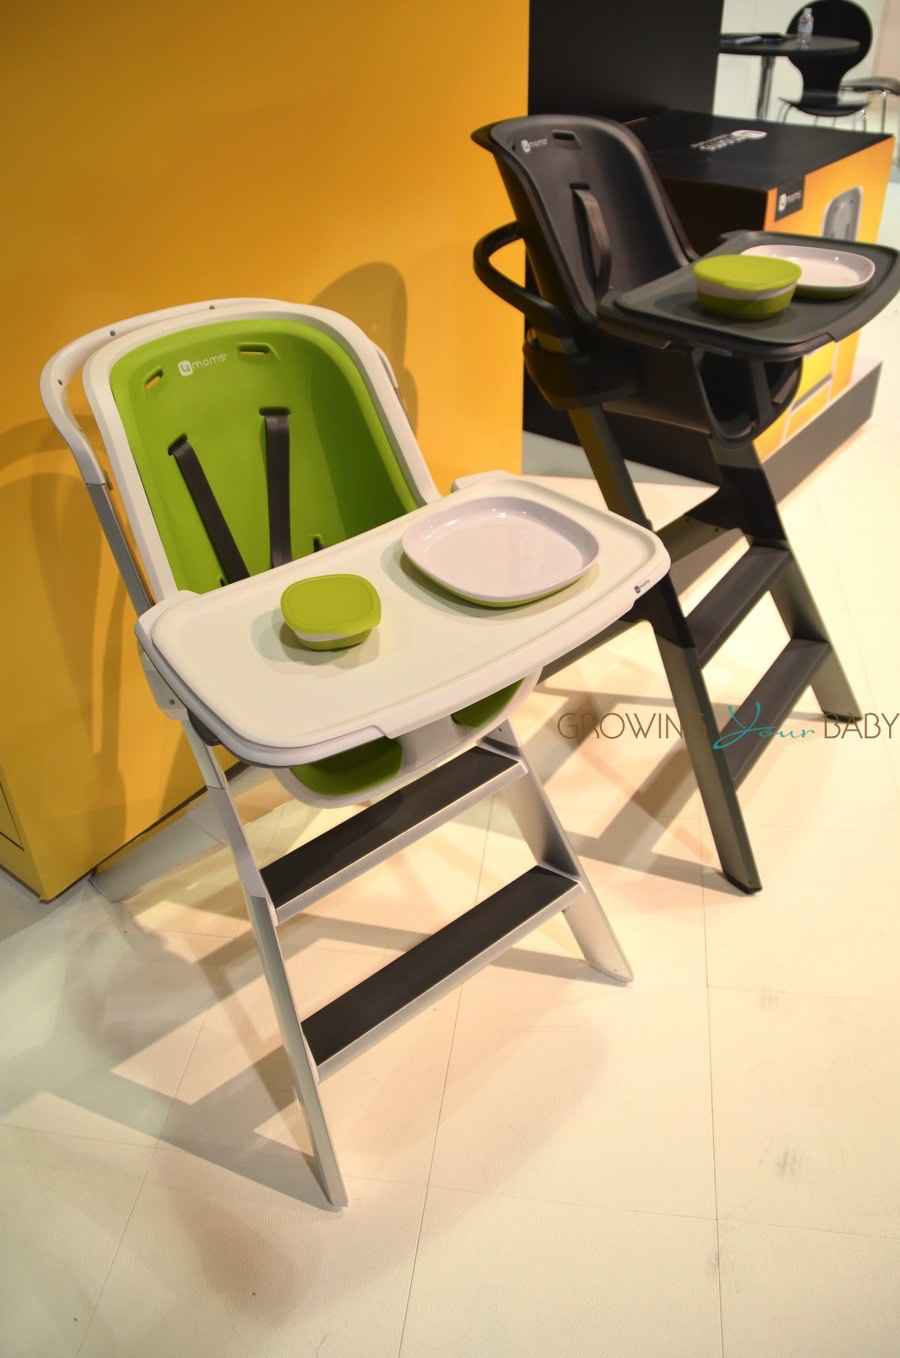 4moms high chair review custom dining chairs upholstered impeccable growing your baby straps fullsize of large